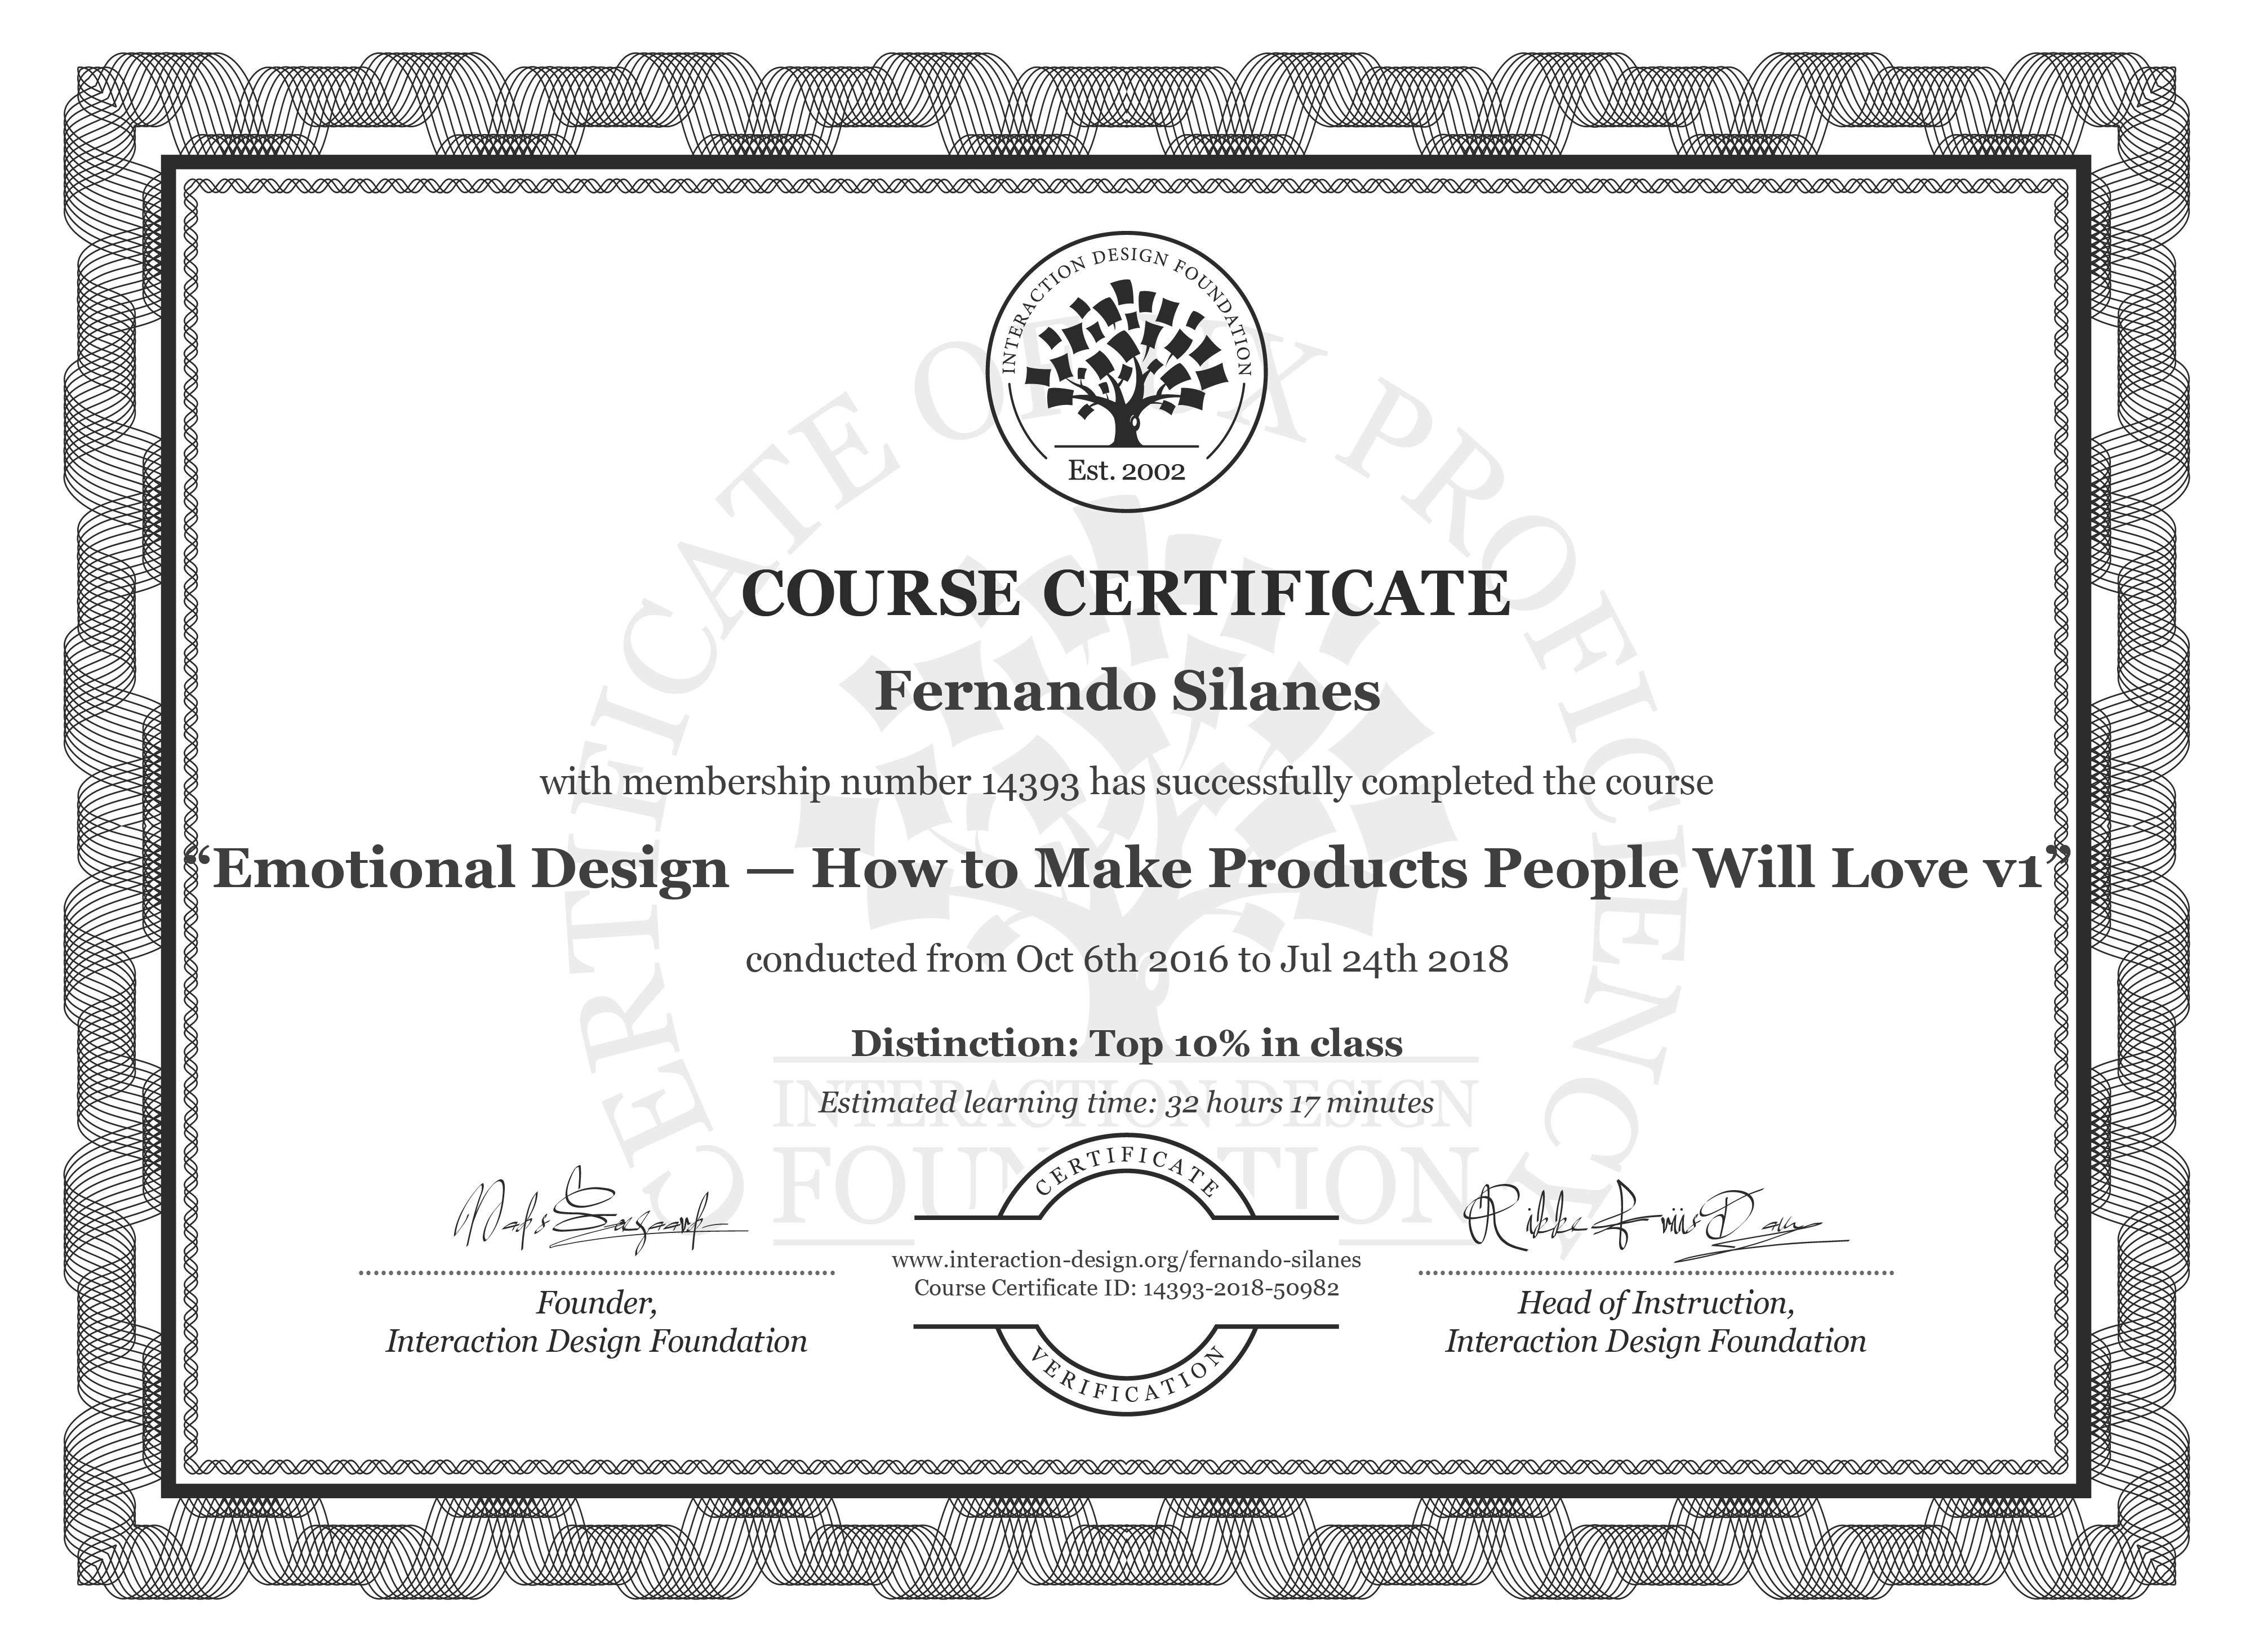 Fernando Silanes: Course Certificate - Emotional Design: How to Make Products People Will Love